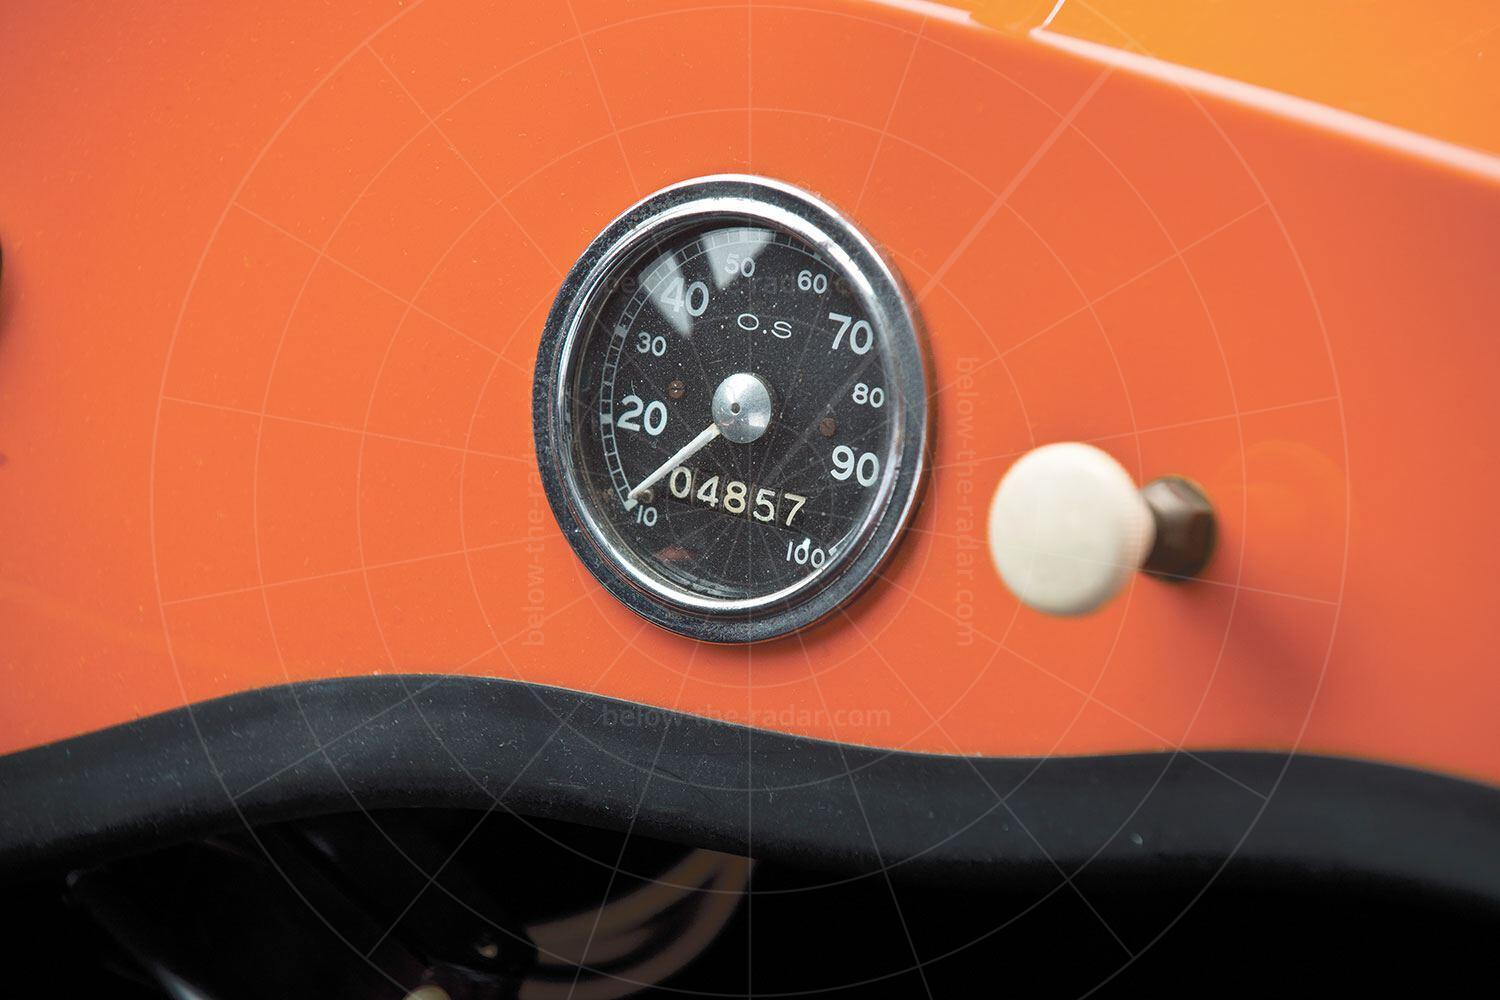 Avolette Record Deluxe dashboard Pic: RM Sotheby's | Avolette Record Deluxe dashboard